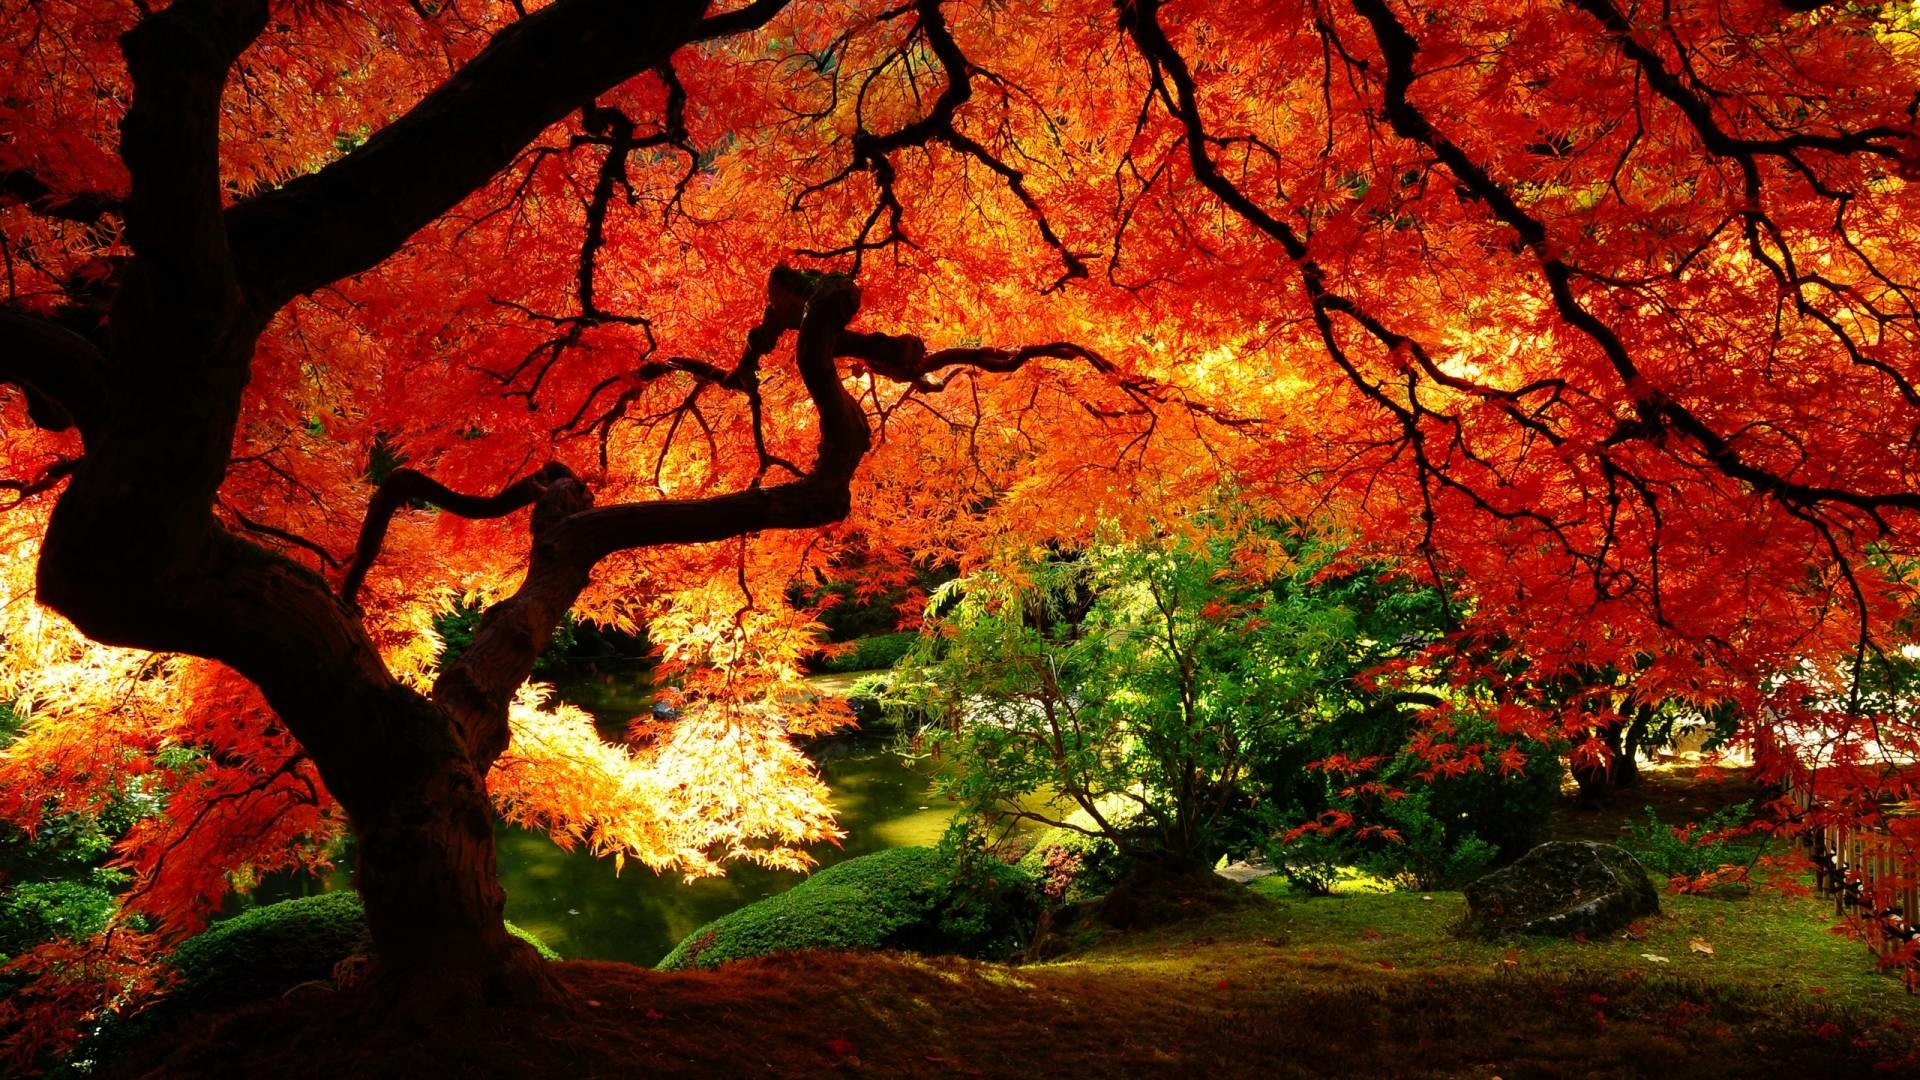 Explore Autumn Trees, Autumn Leaves, and more!